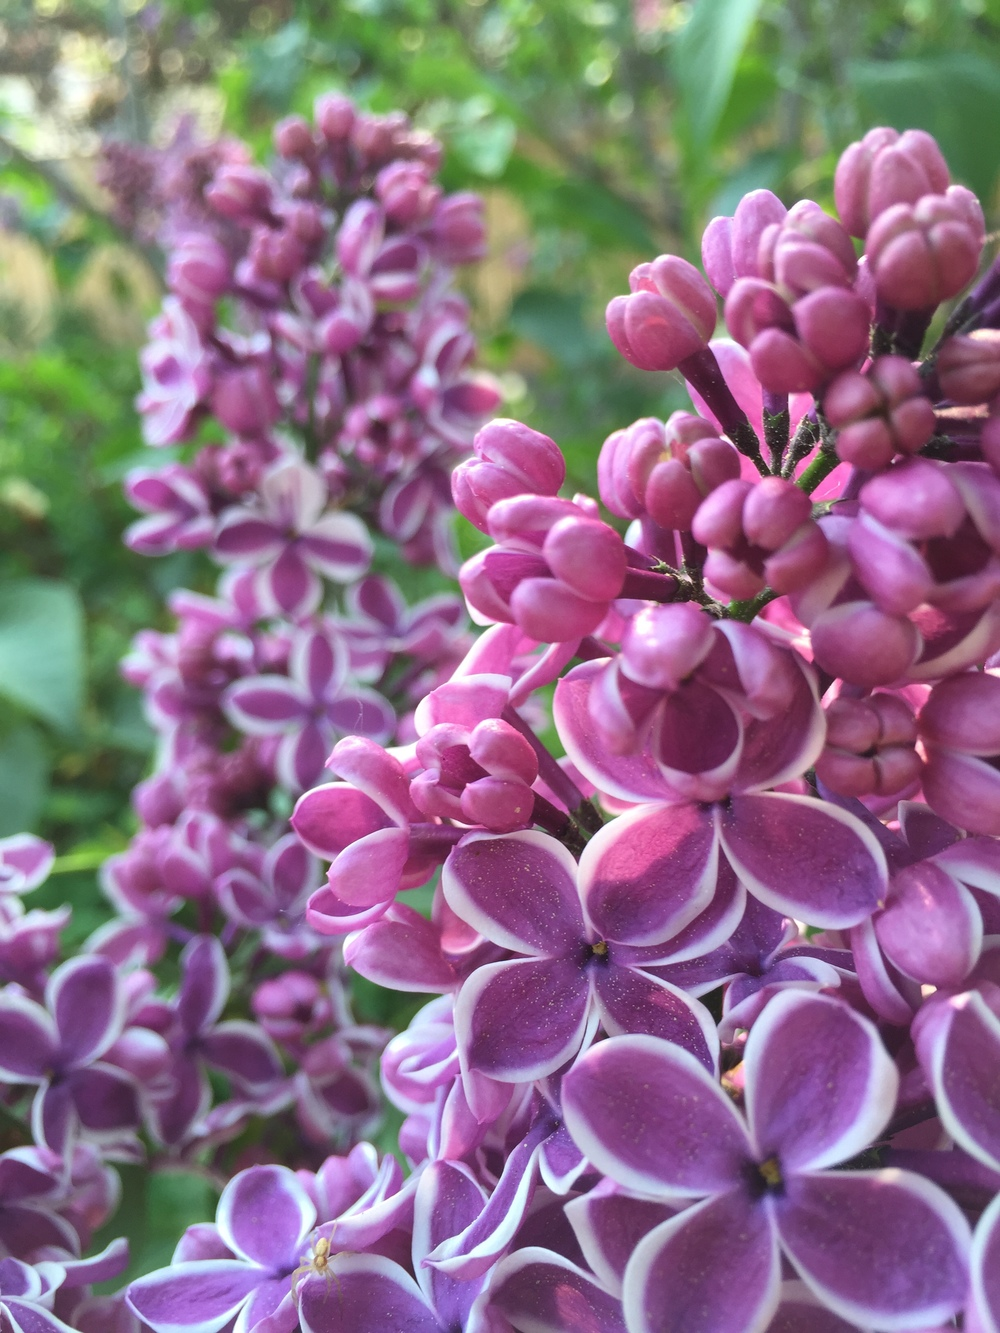 Beautiful 'Sensation' - the first bicolour lilac, discovered in the 1930s by a Dutch grower